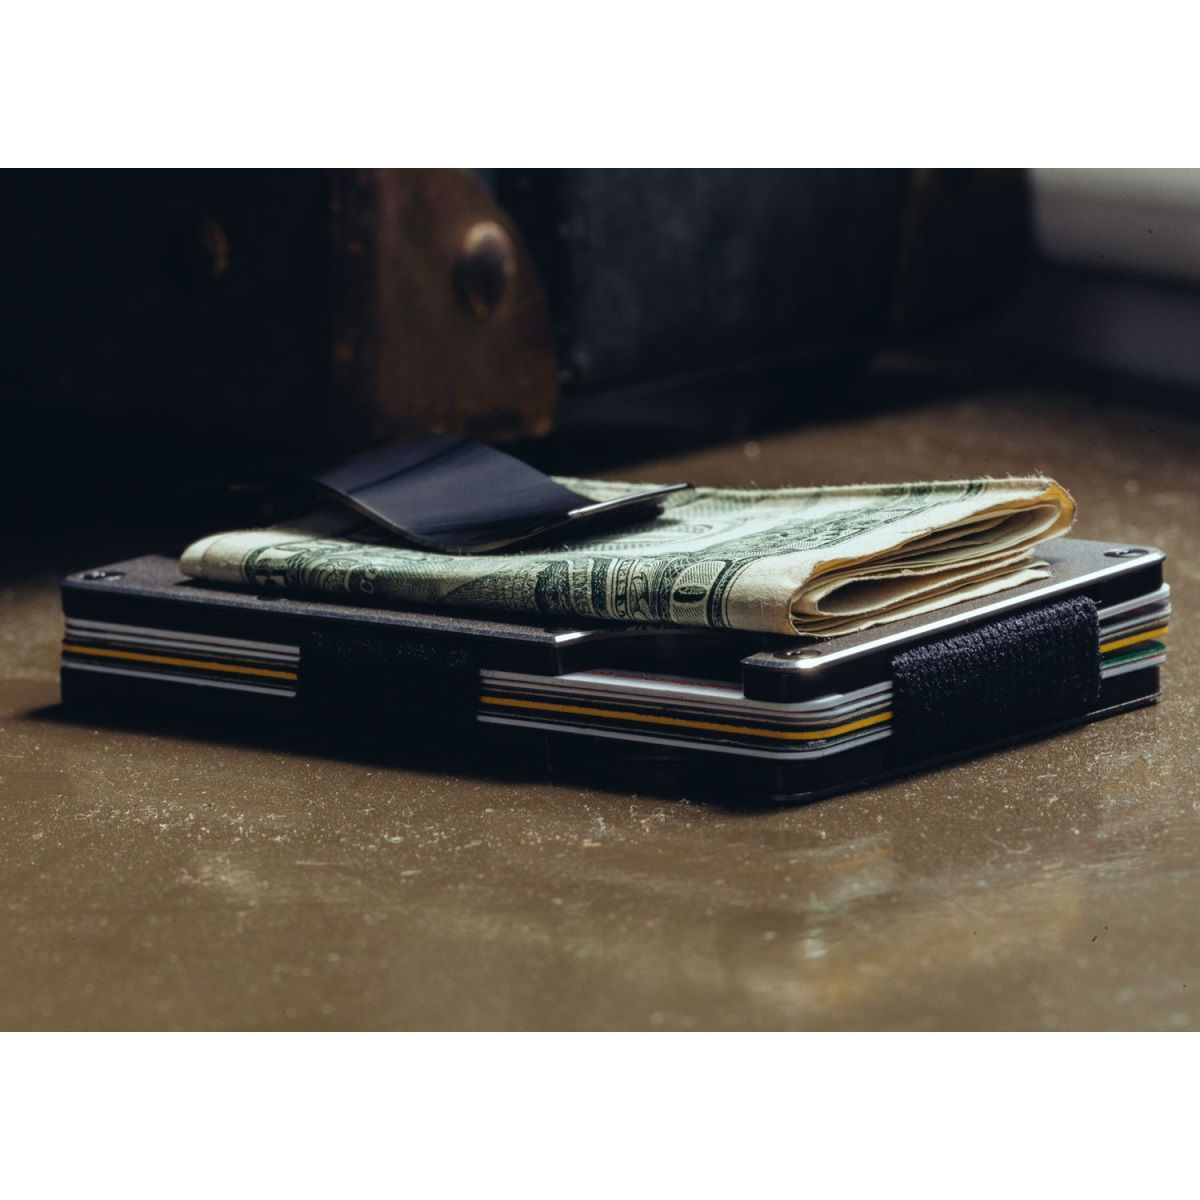 THE RIDGE Aluminum Wallet With Money Clip - Gunmetal